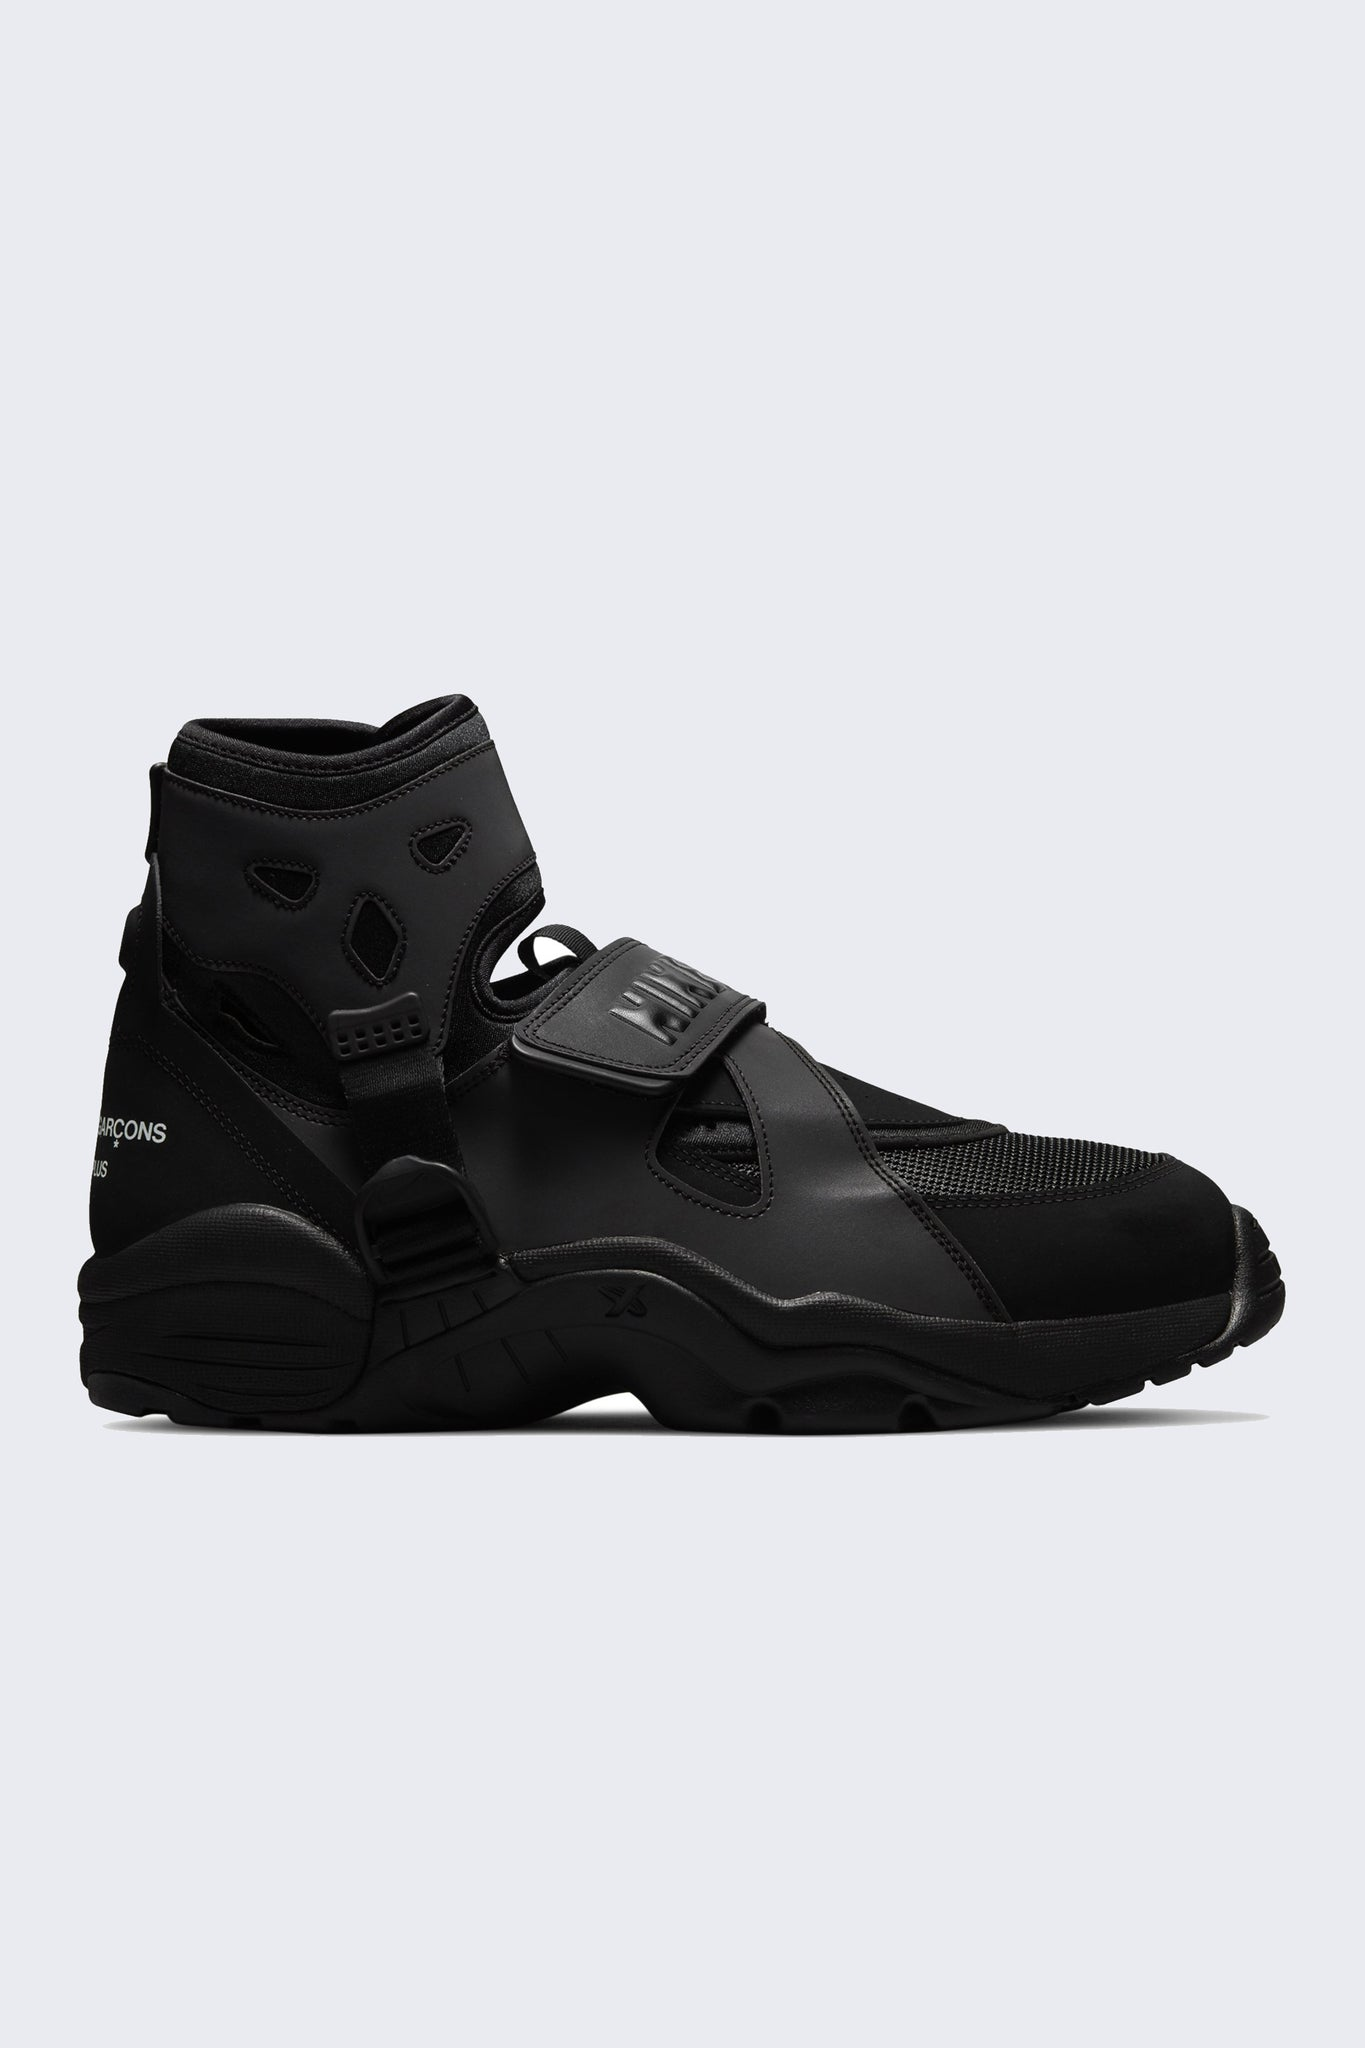 Cdg Nike Air Carnivore / Black